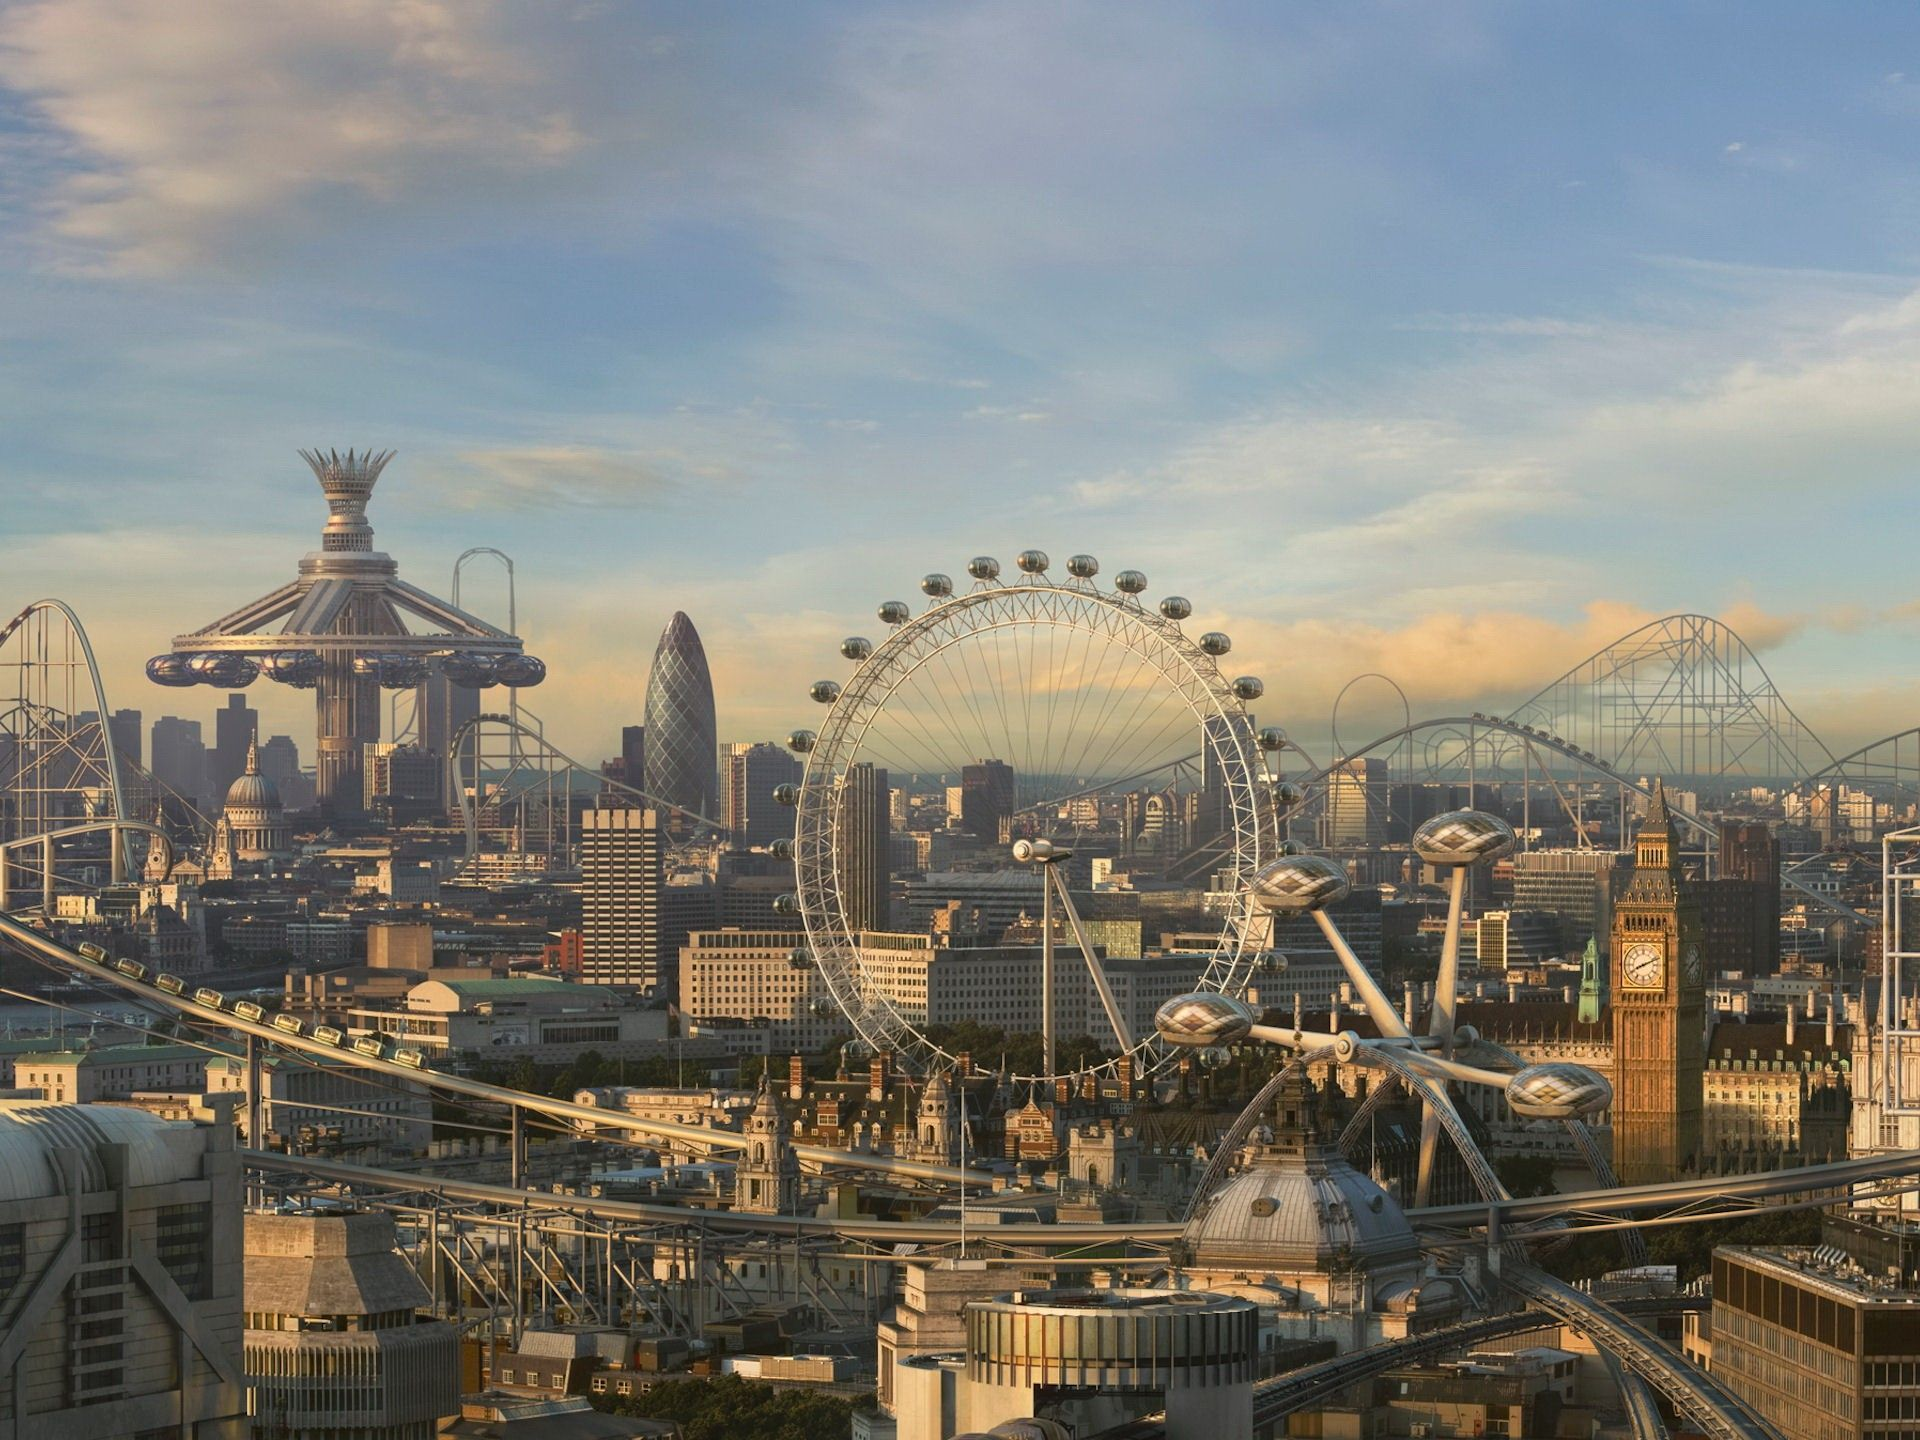 London, Future, Park, Entertainment, Attractions - HD wallpaper desktop backgrounds